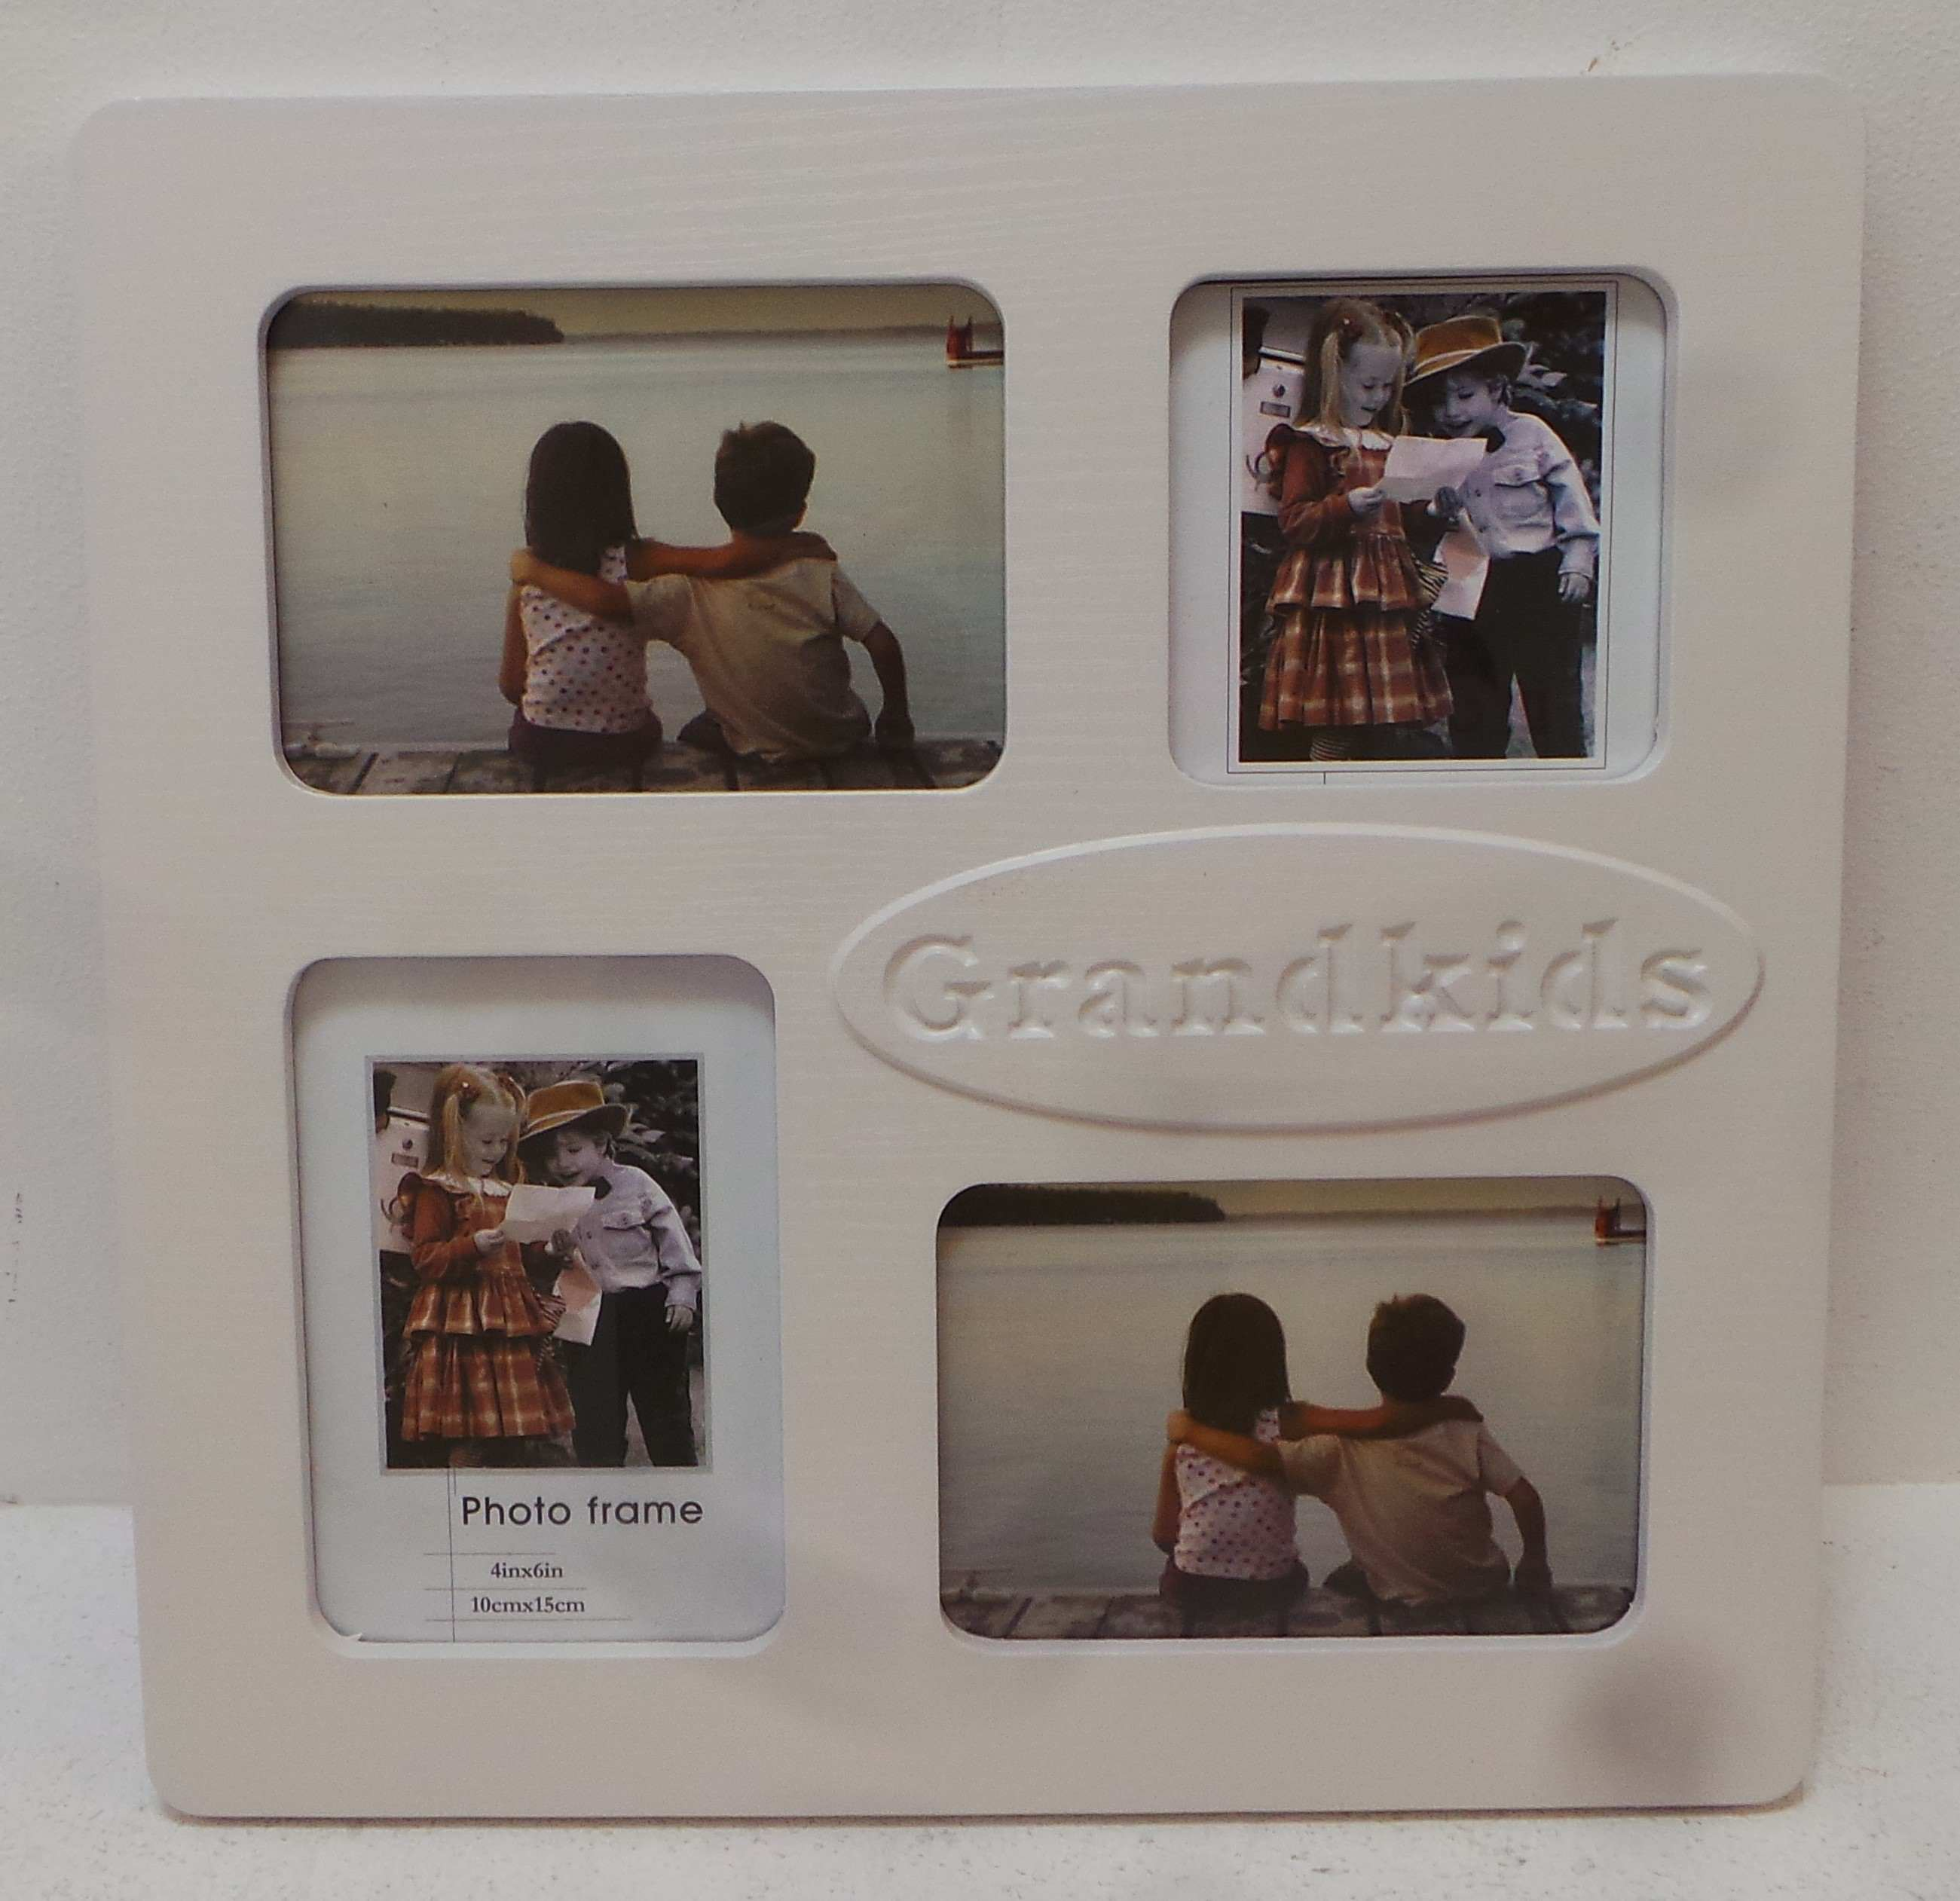 Joblot of 18 Beautiful Grandkids Collage Picture Frame in White Gloss